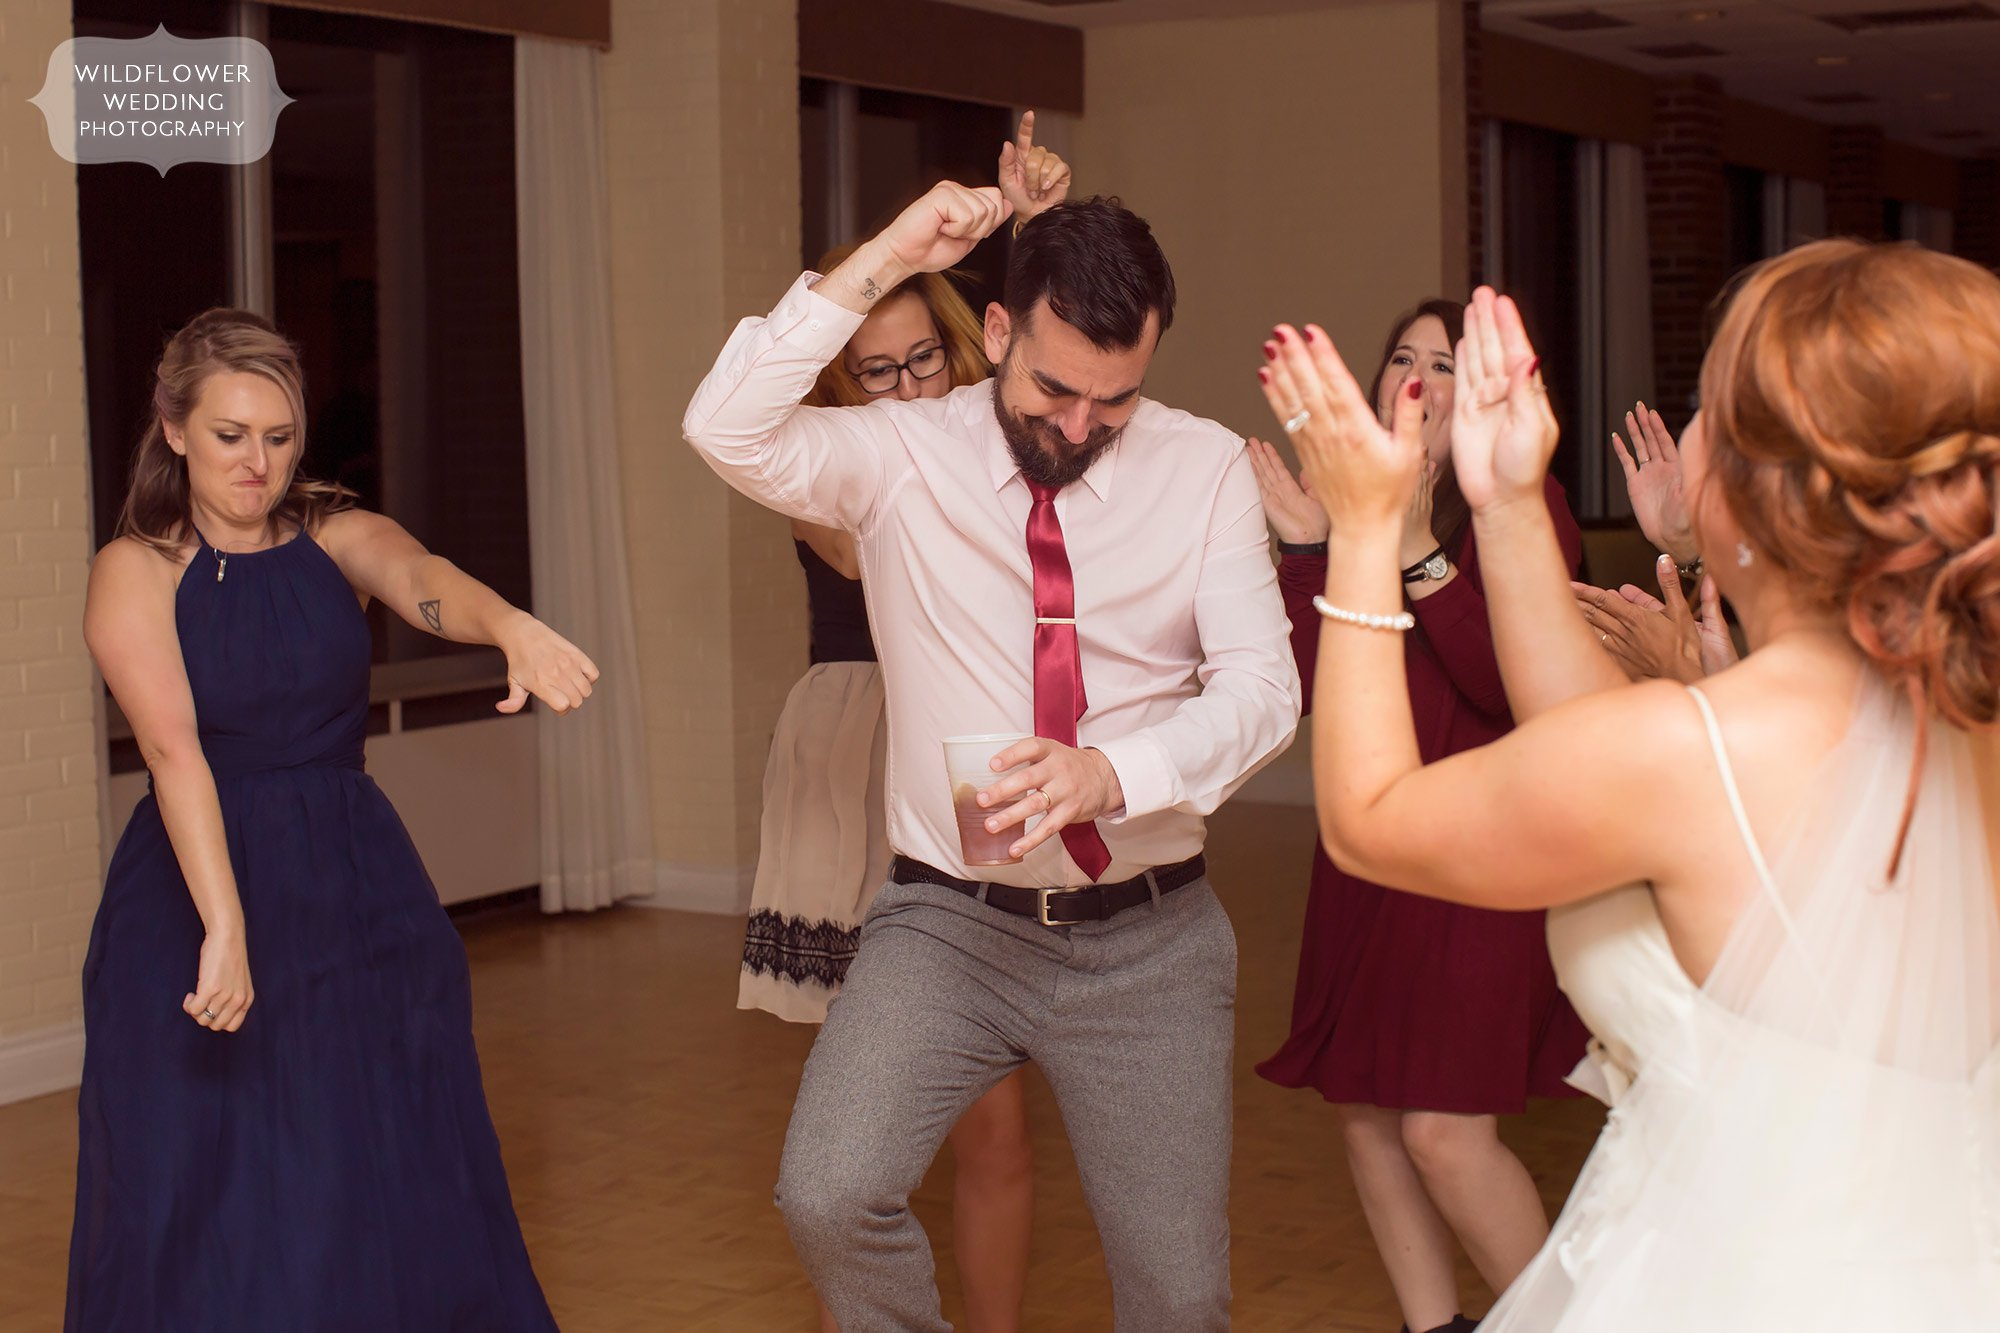 Funny friends during wedding reception dancing.